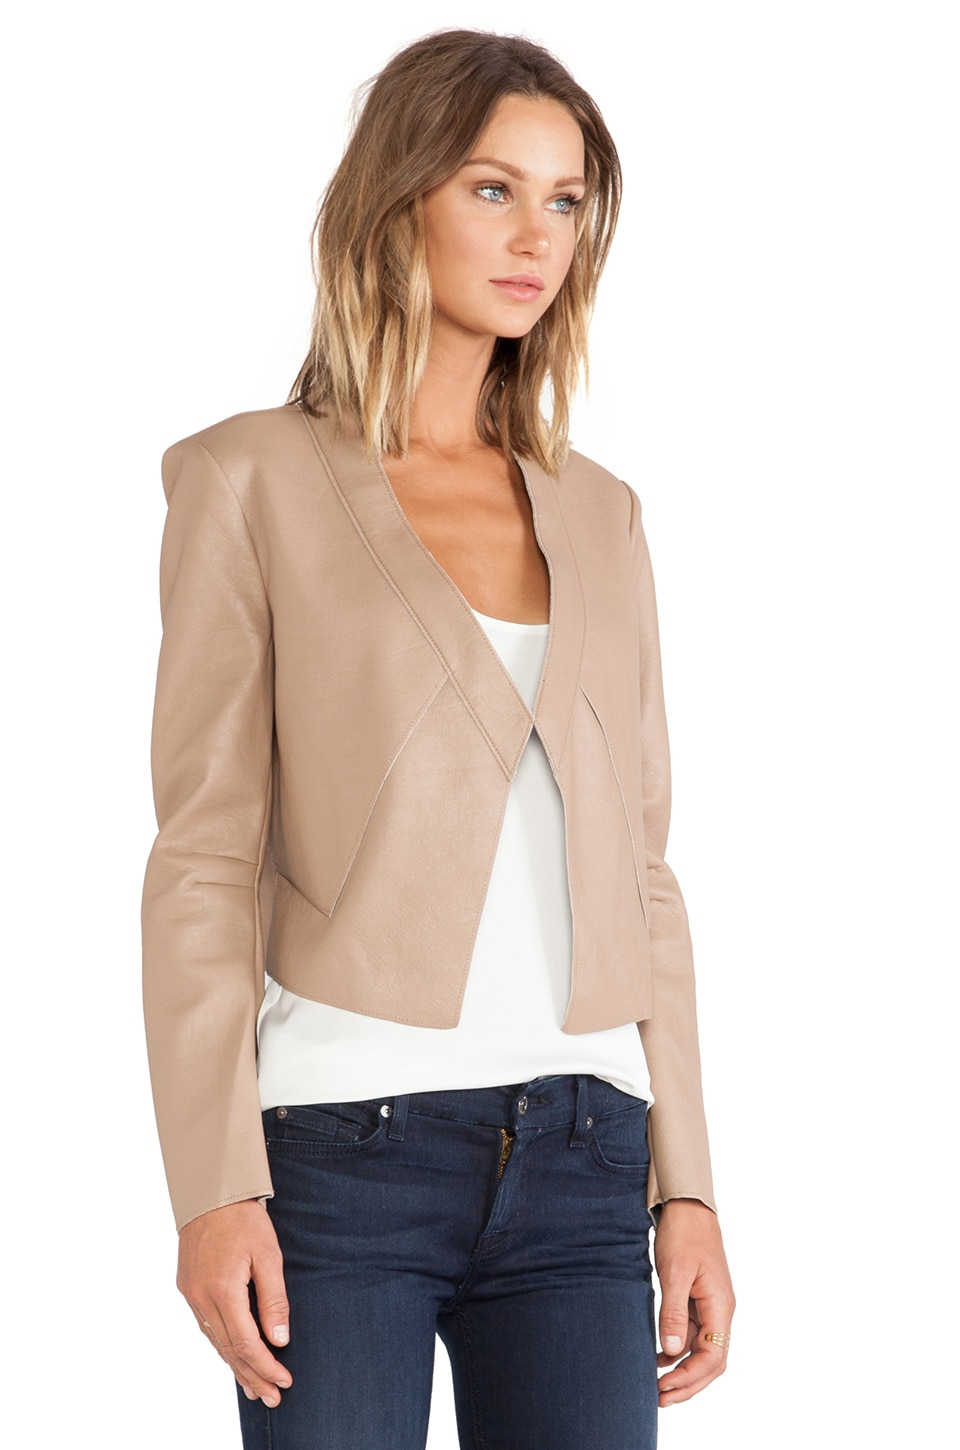 Camel leather jacket womens – Modern fashion jacket photo blog